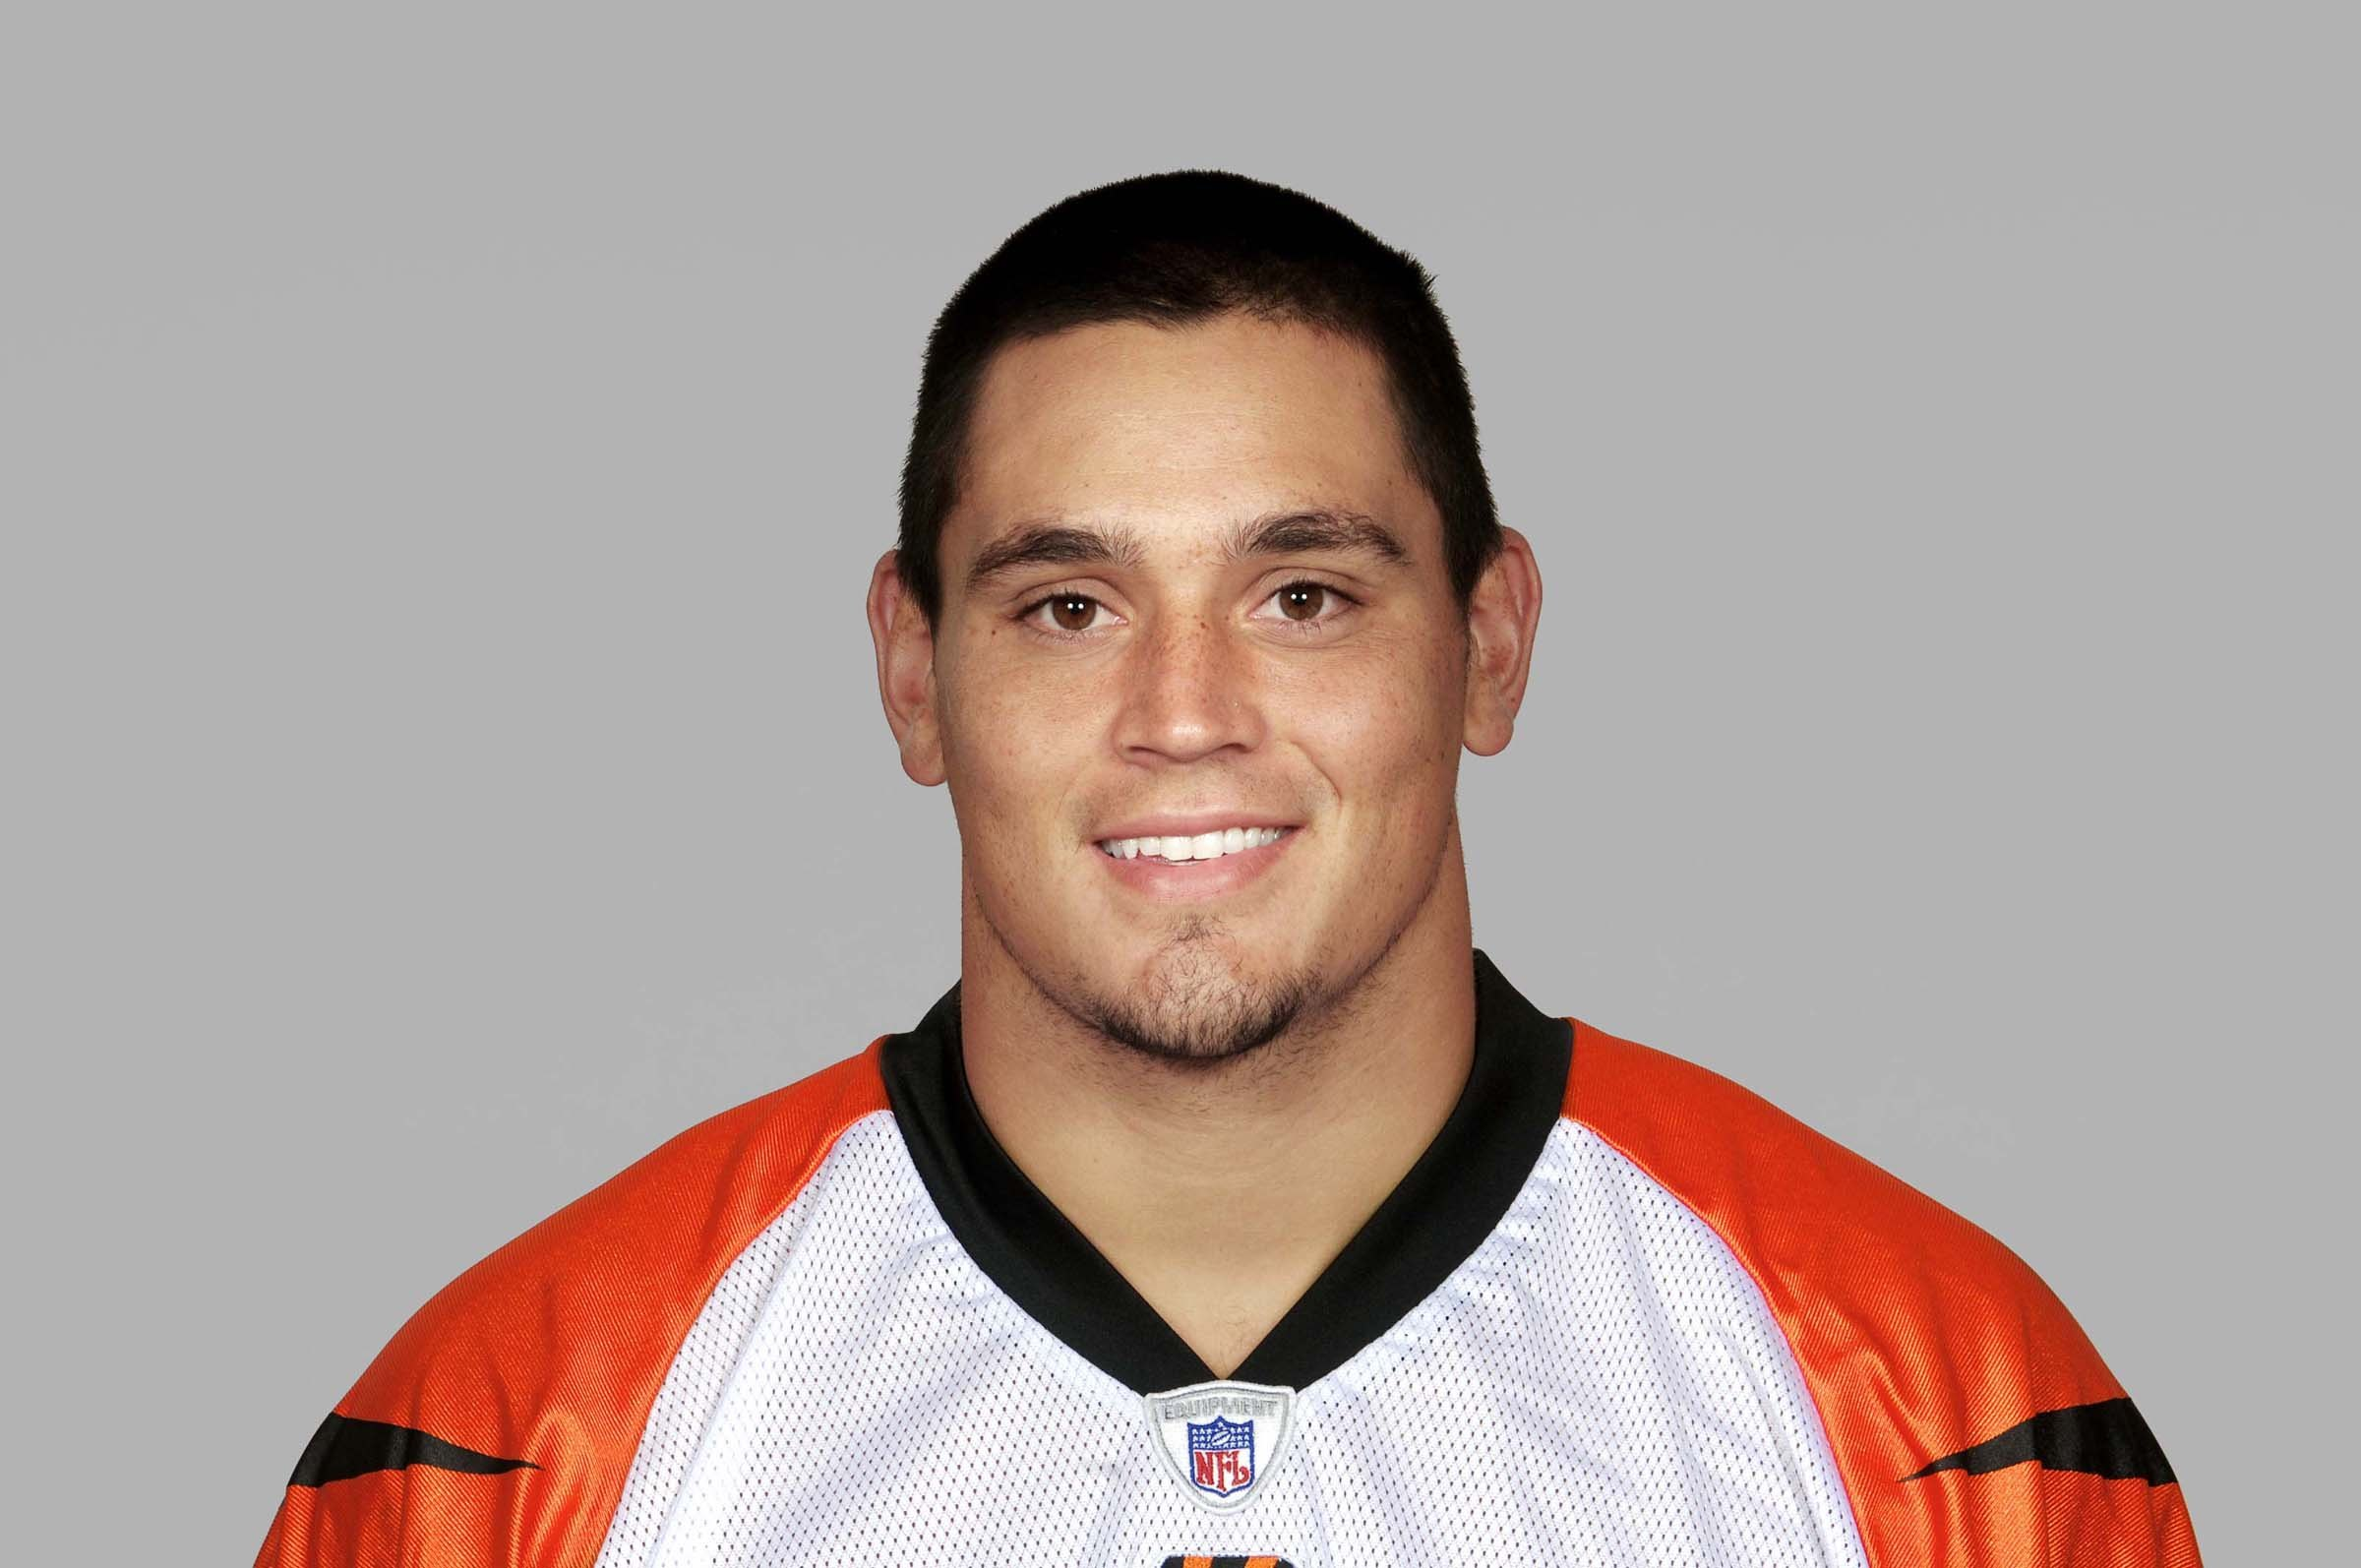 CINCINNATI - 2007:  David Pollack of the Cincinnati Bengals poses for his 2007 NFL headshot at photo day in Cincinnati, Ohio.  (Photo by Getty Images)